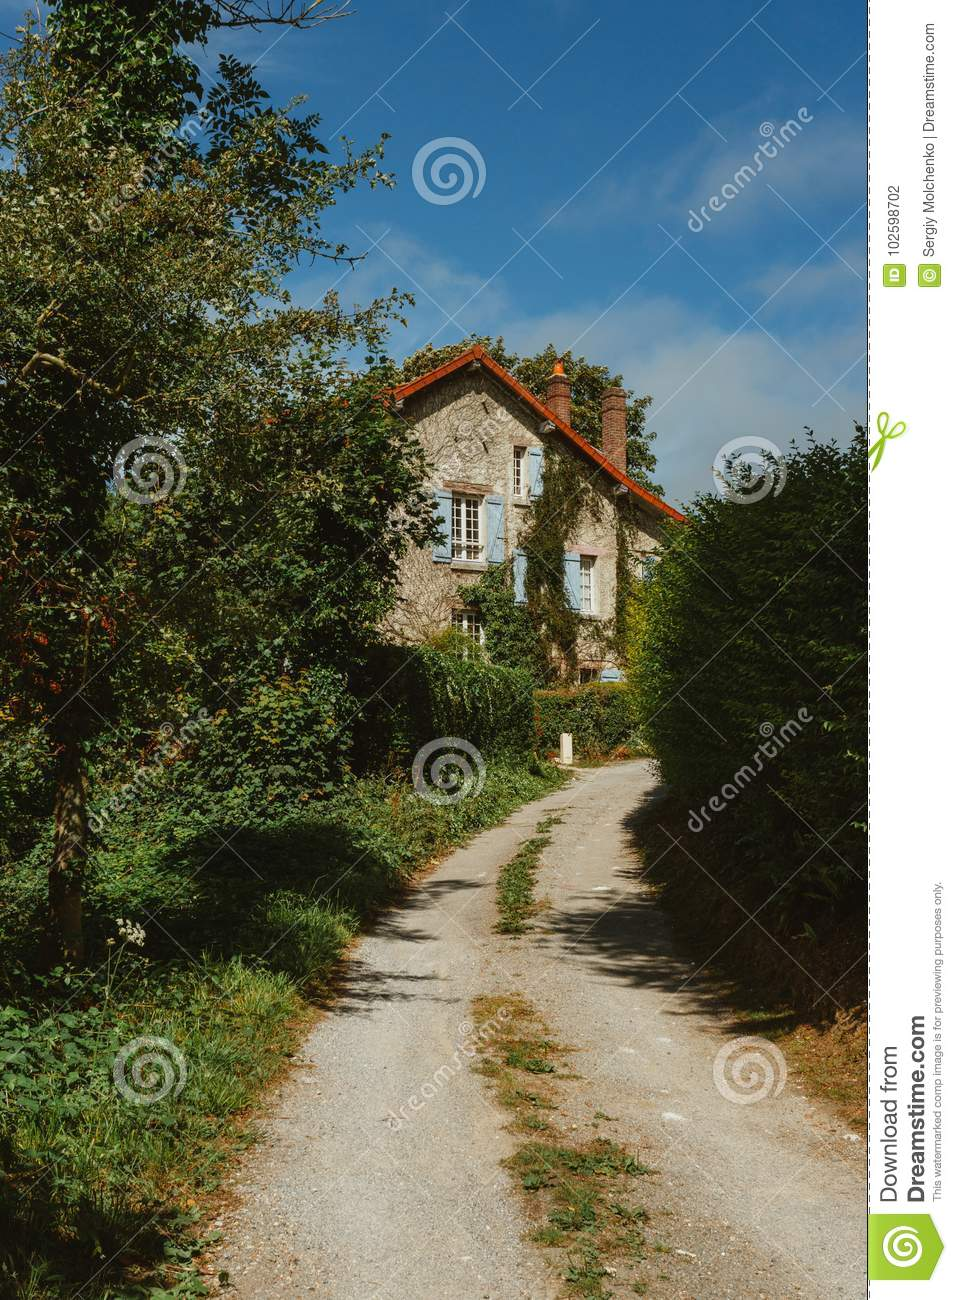 Old Country House With Blue Shutters And Gravel Road In